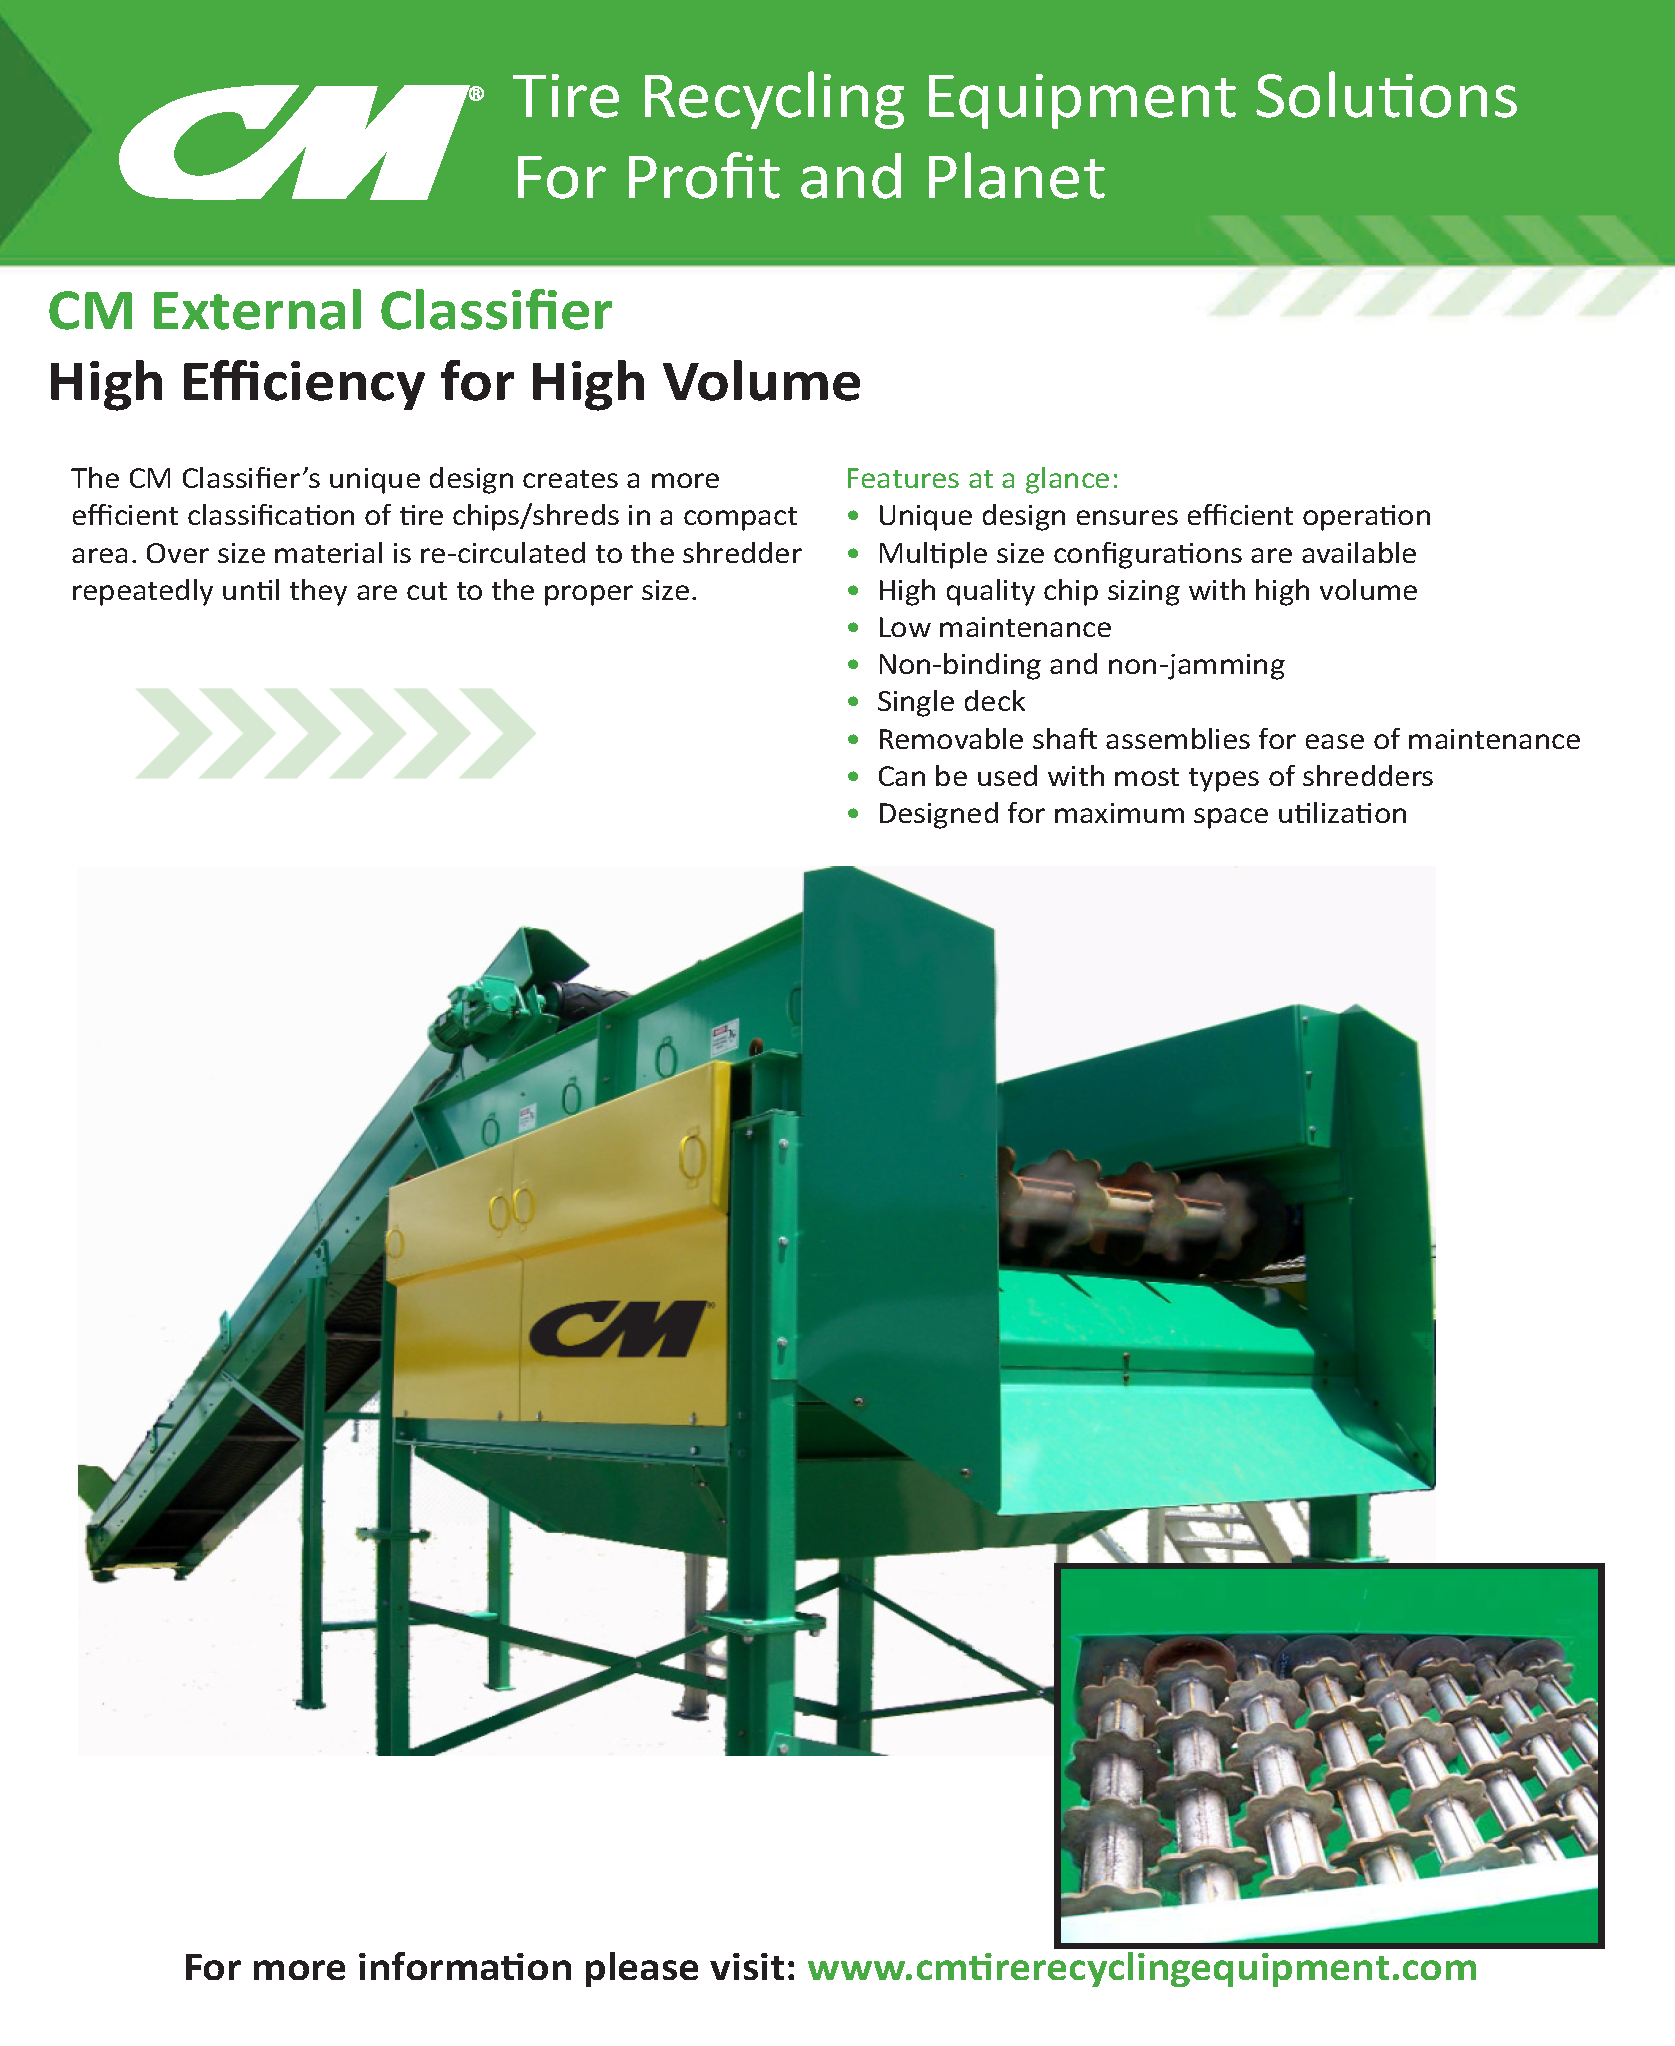 Learn more by viewing the CM External Classifier Brochure